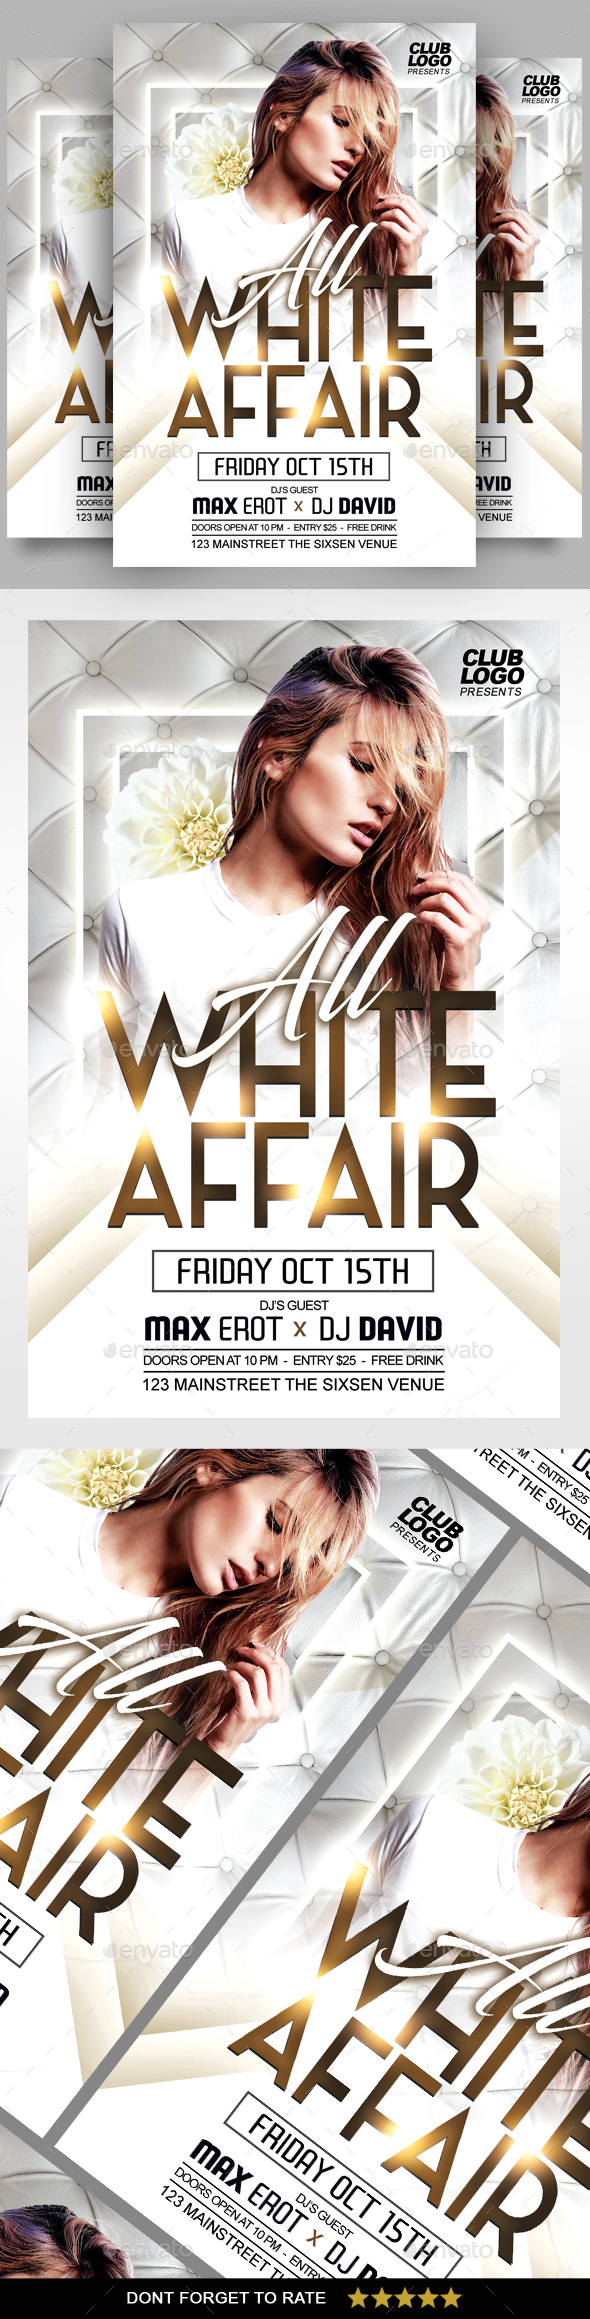 White Affair Flyer - Clubs & Parties Events